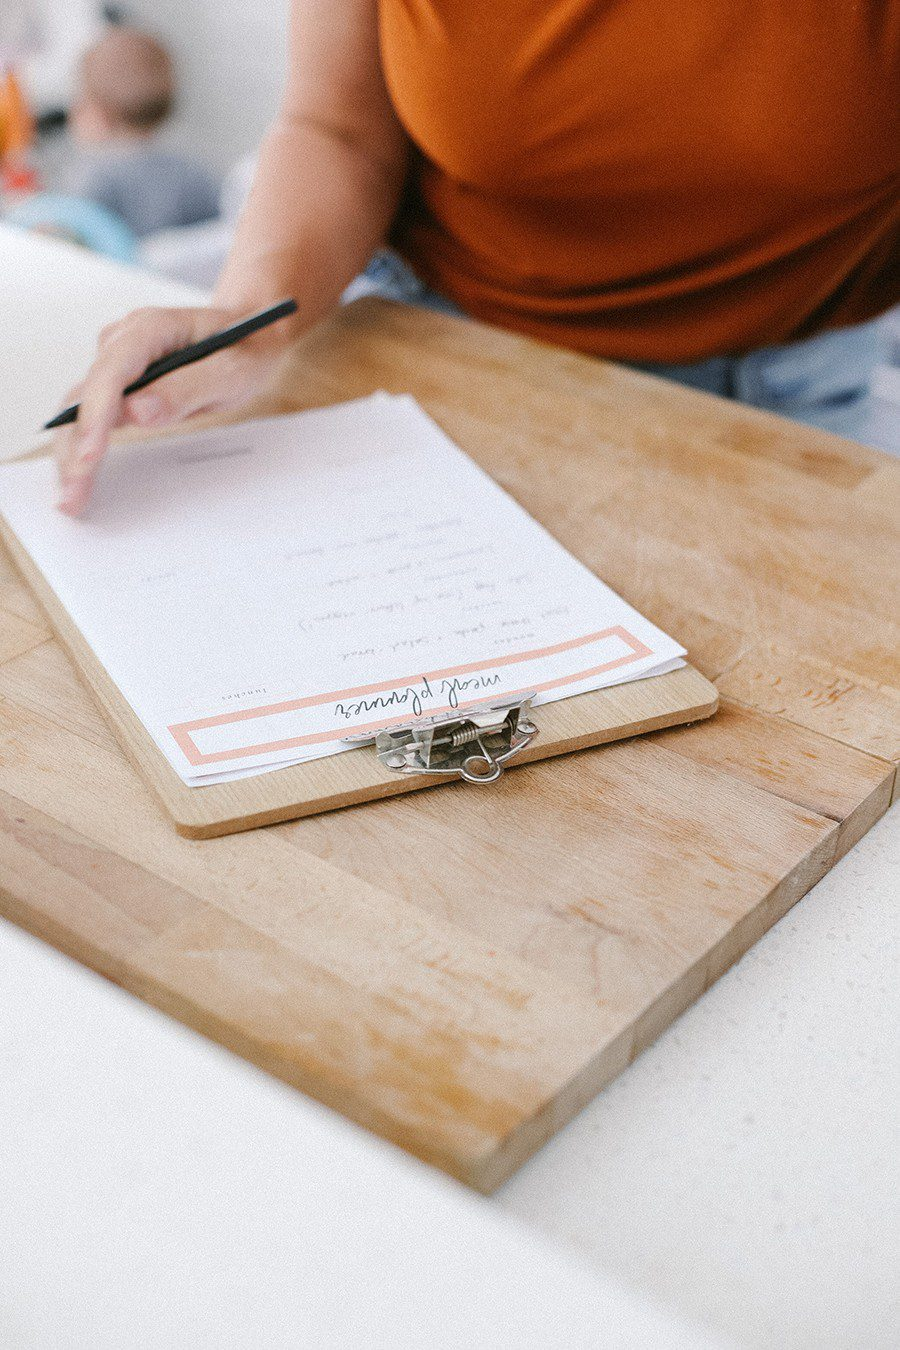 Family Meal Planning Tips to Save Money and Free Printable | Family Meal Planning by popular Florida lifestyle blog, Fresh Mommy Blog: image of a woman looking a meal planning sheet on a clipboard.